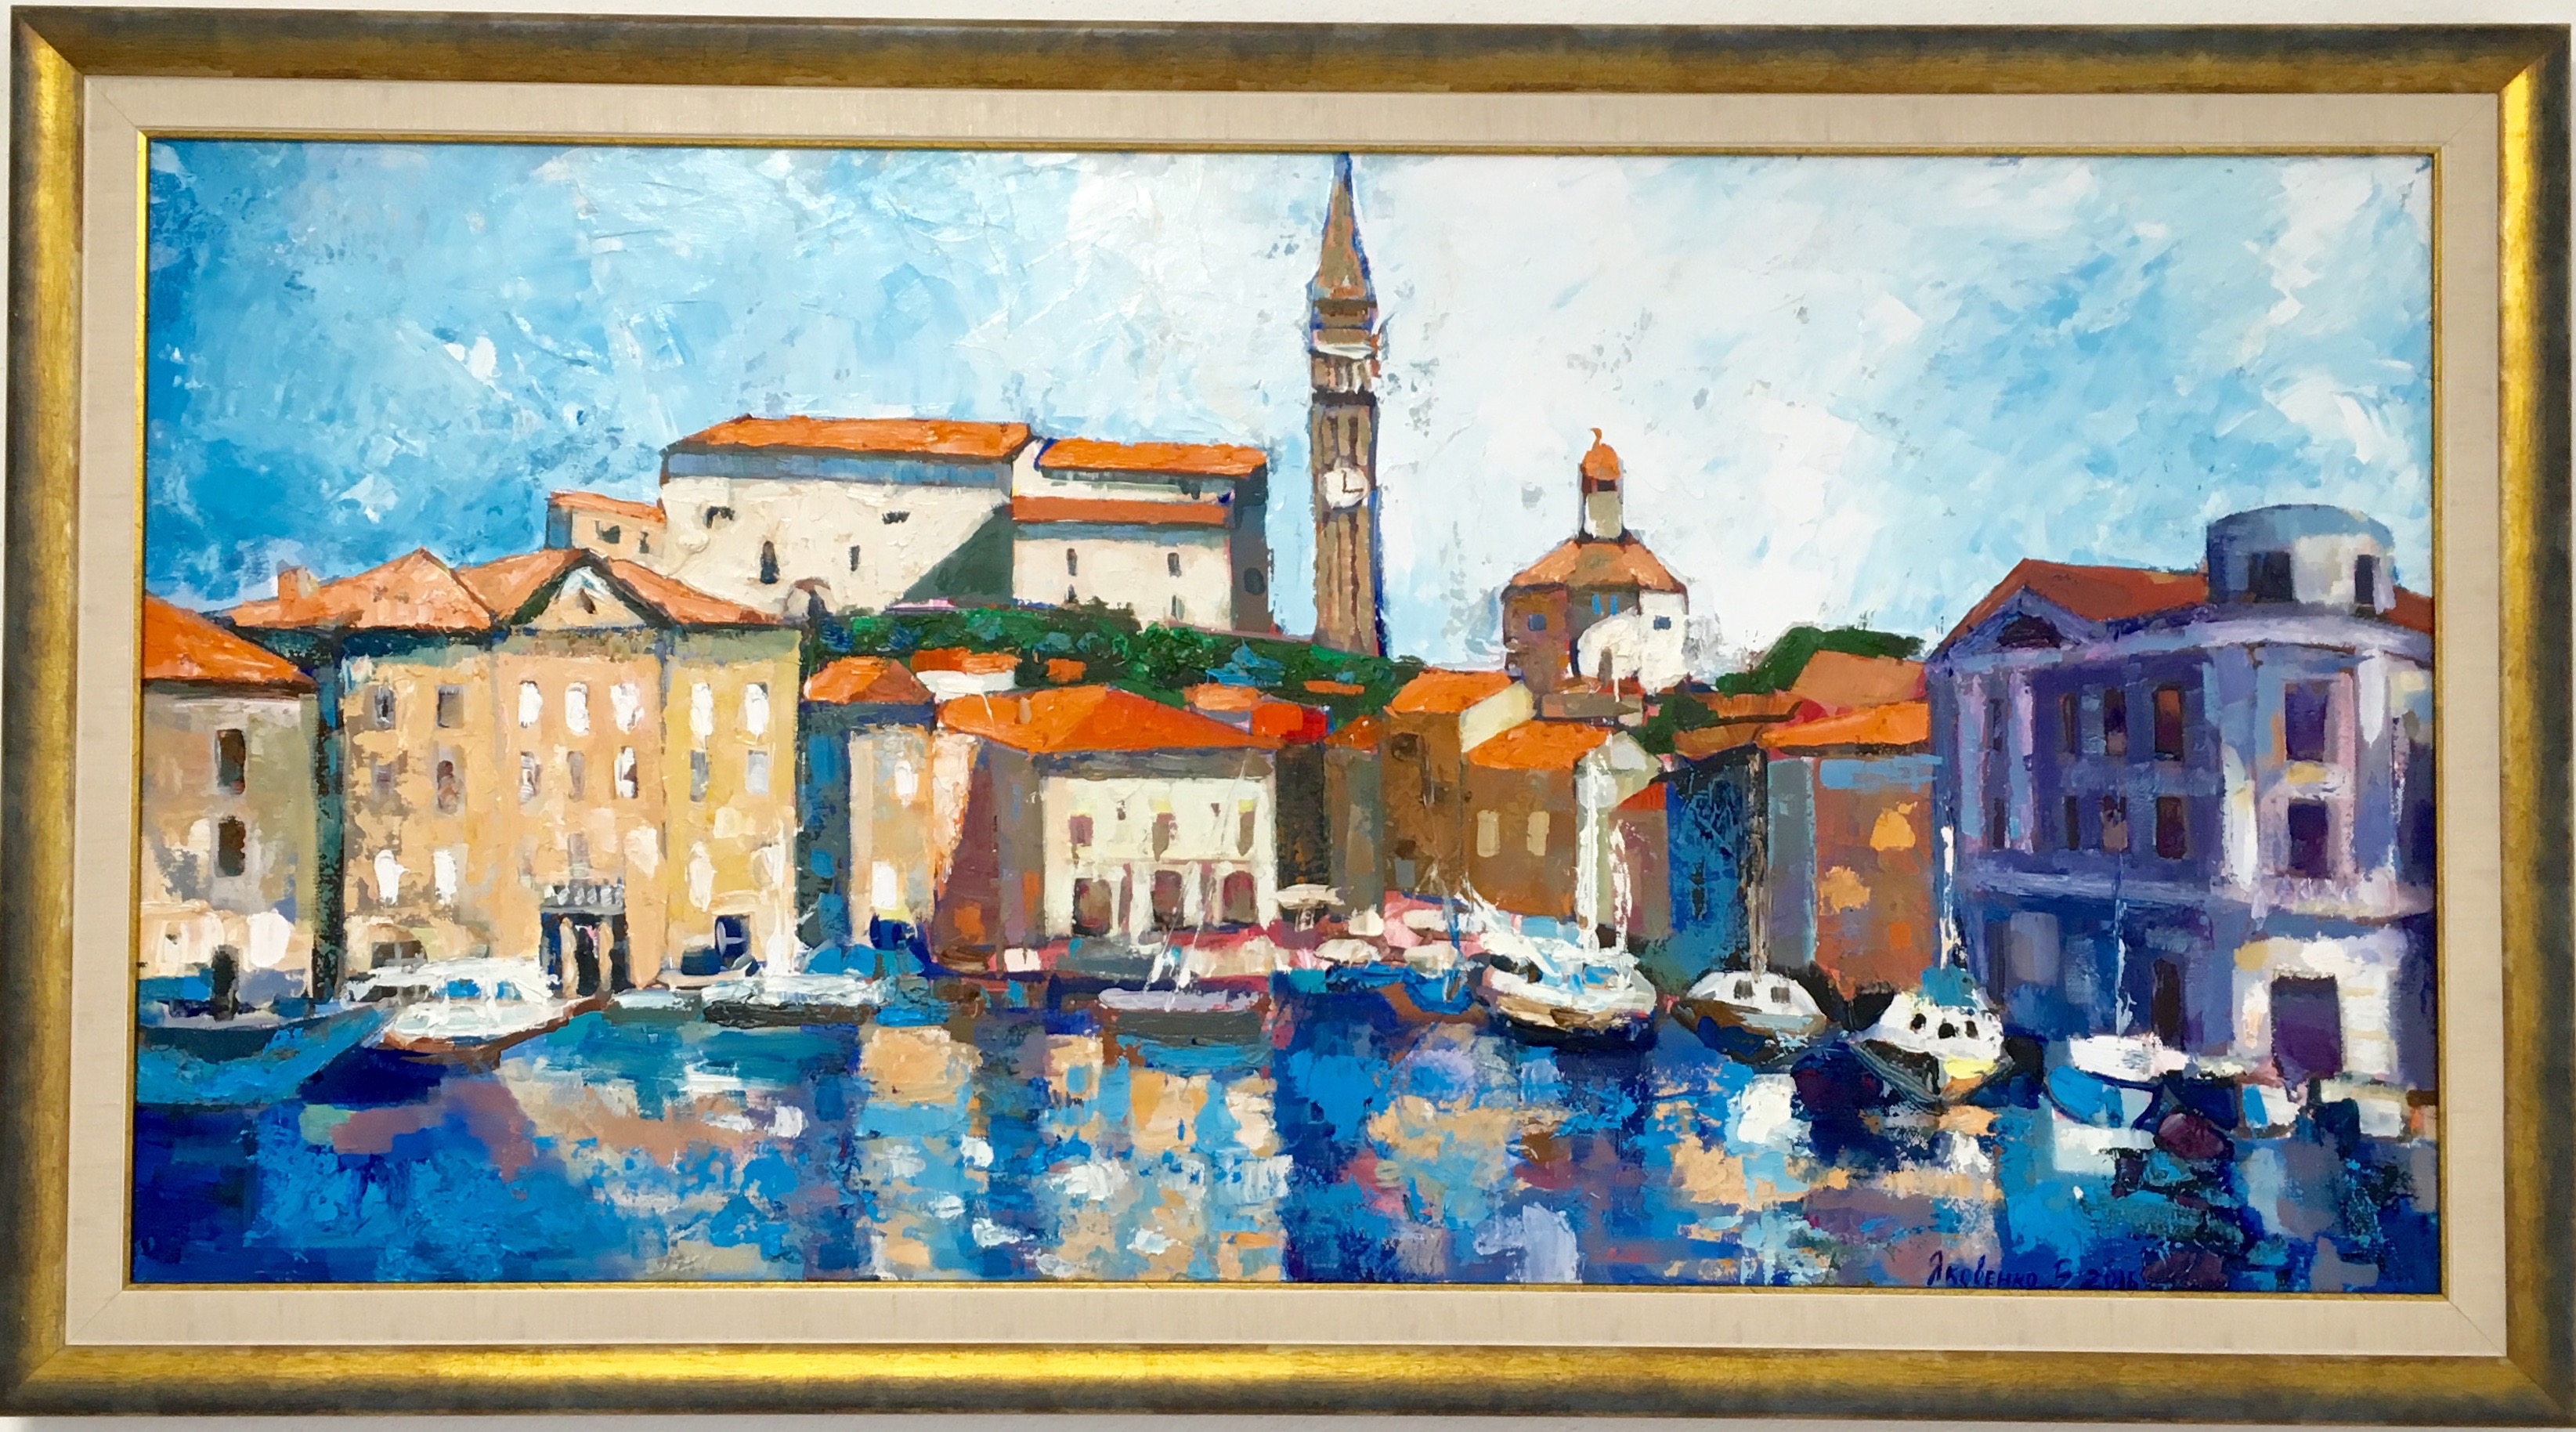 Piran 2016 oil, canvas